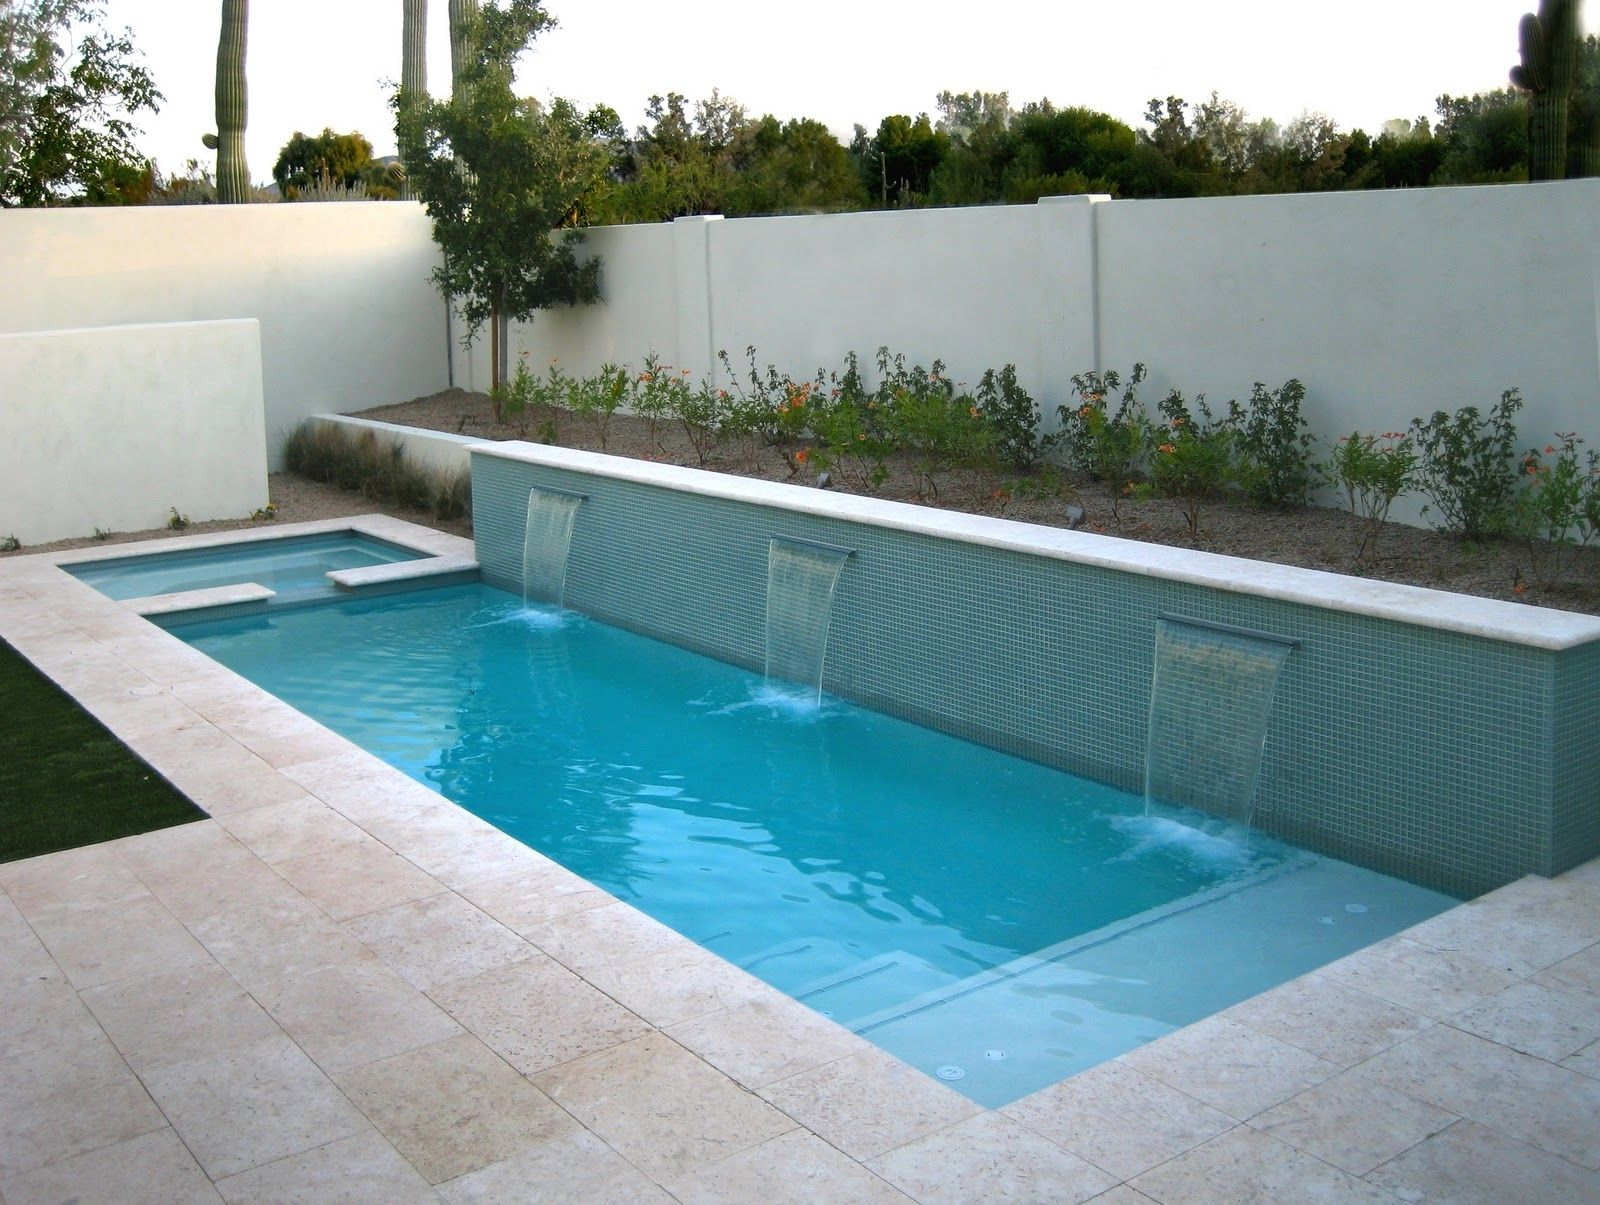 breathtaking simple small and corneric savvy space outdoor swimming pool  with pottery ornaments around: small swimming pool designs | Swim |  Pinterest ...